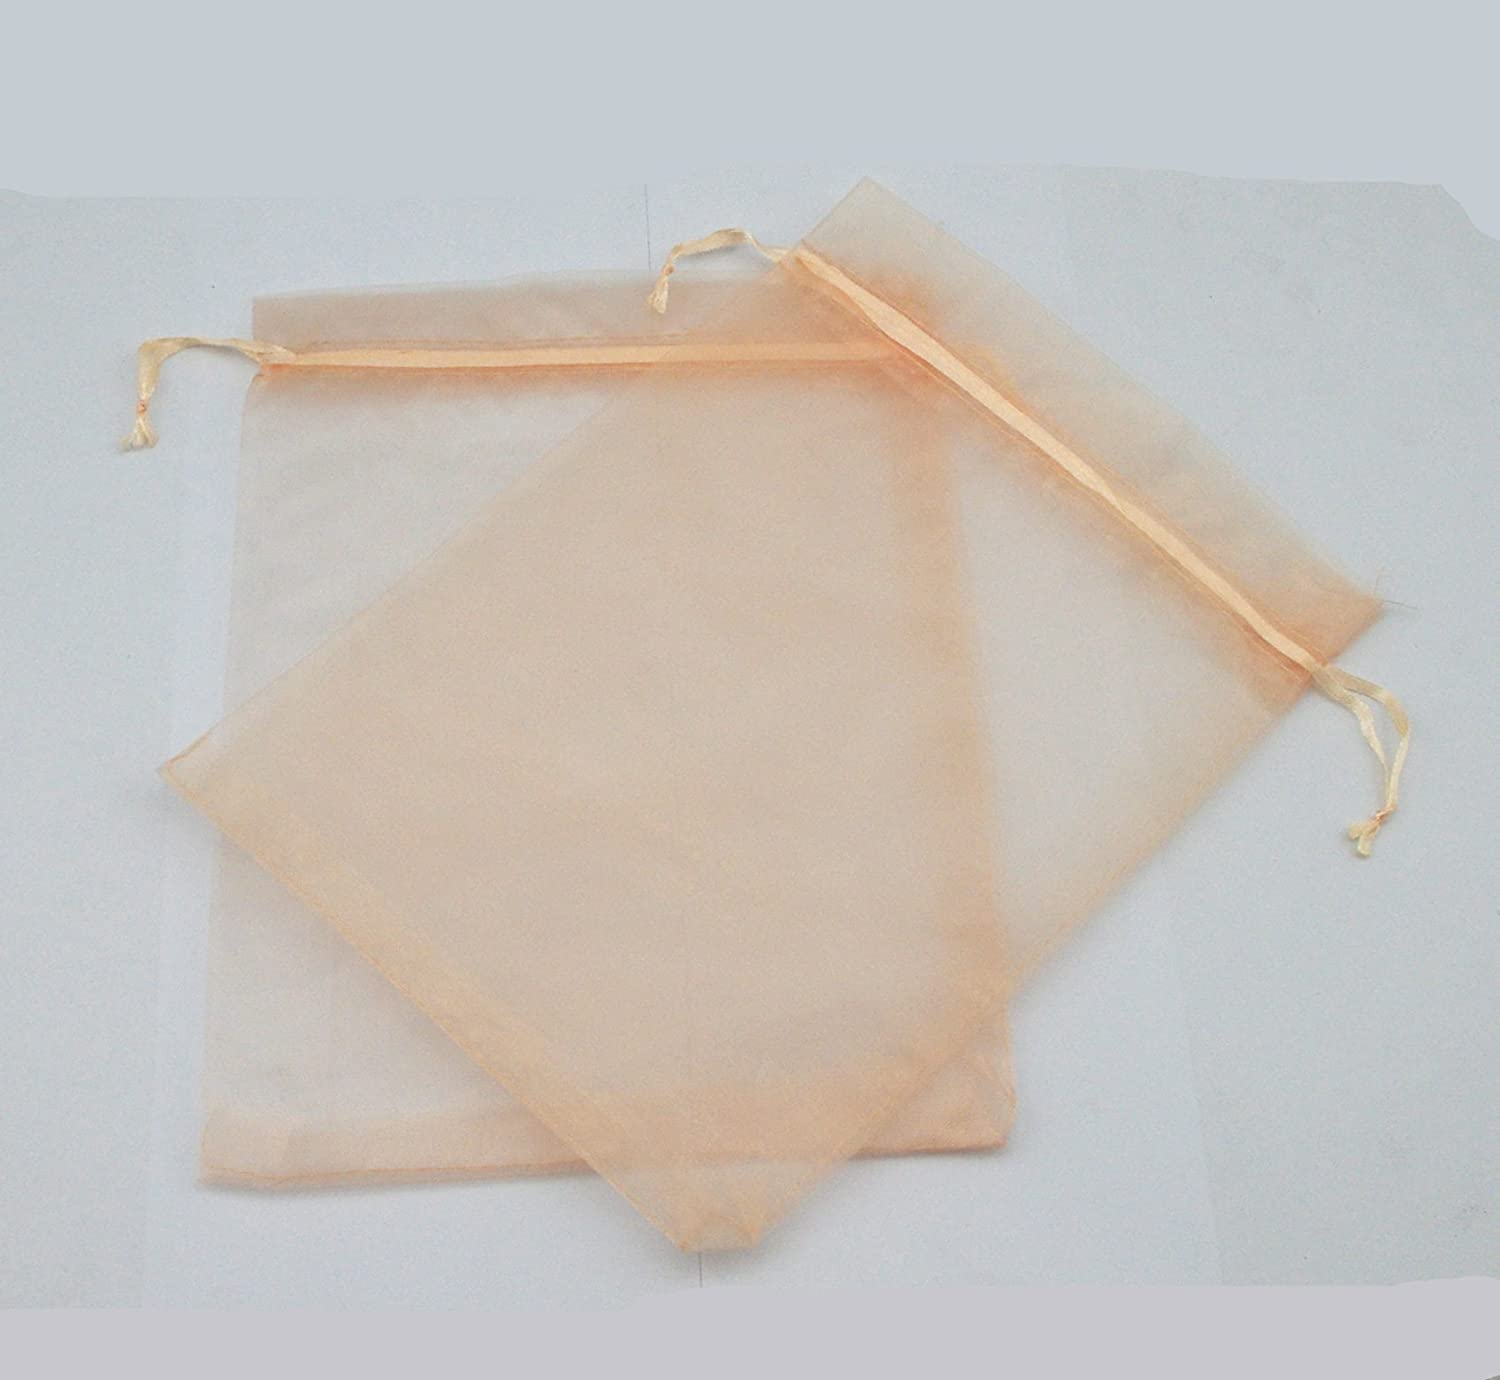 AEAOA 50 Pcs 6x8 Inch Organza Bags Drawstring Wedding Favor Bags Organza Gift Pouches Bags for Wedding Jewelry Party Lemon Yellow